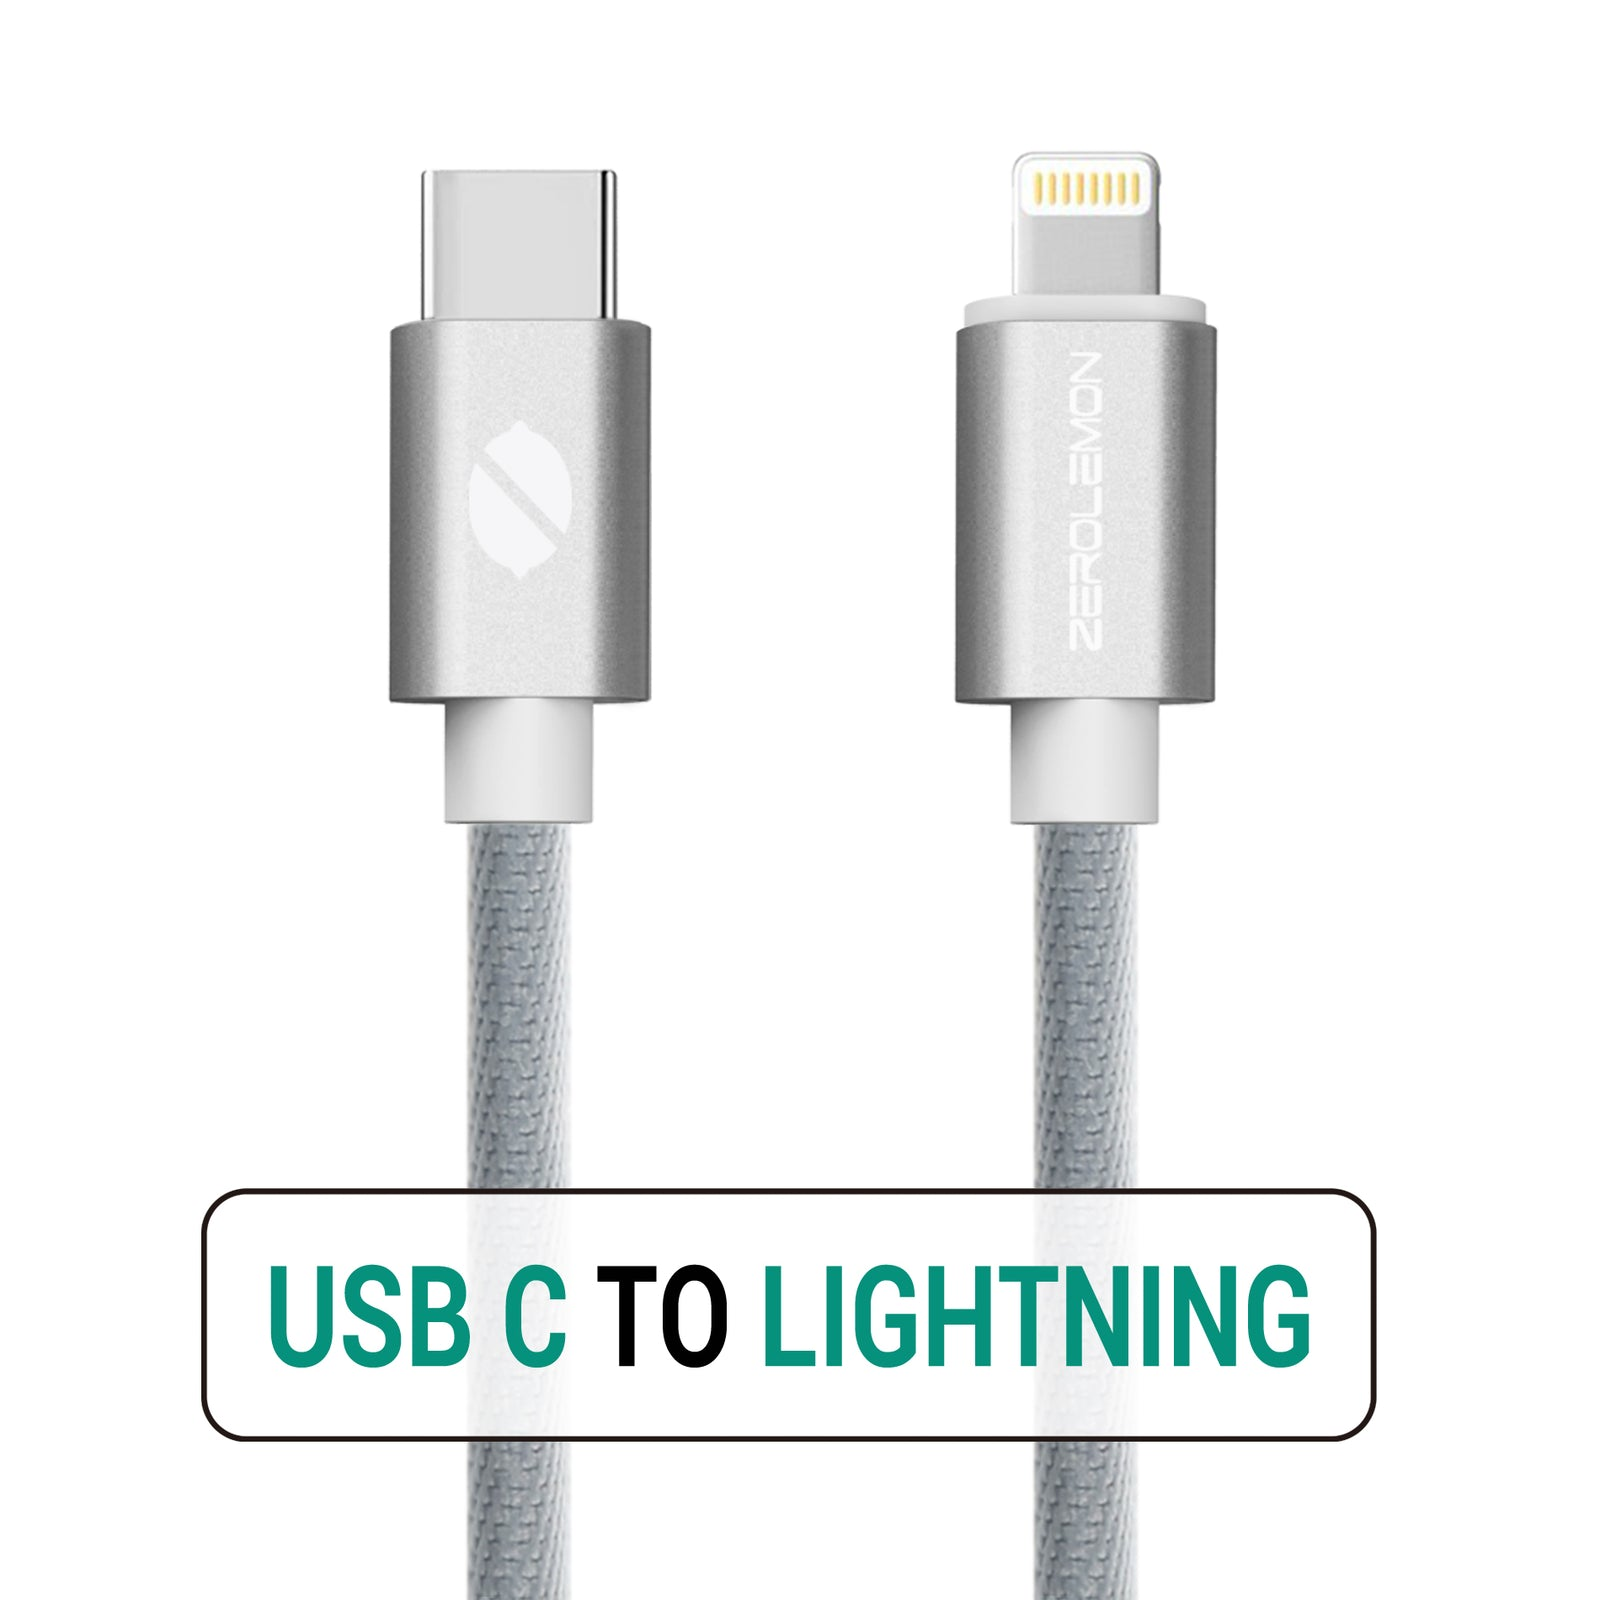 USB C to Lightning Charging Cable 1M [Shipping to the US Only]